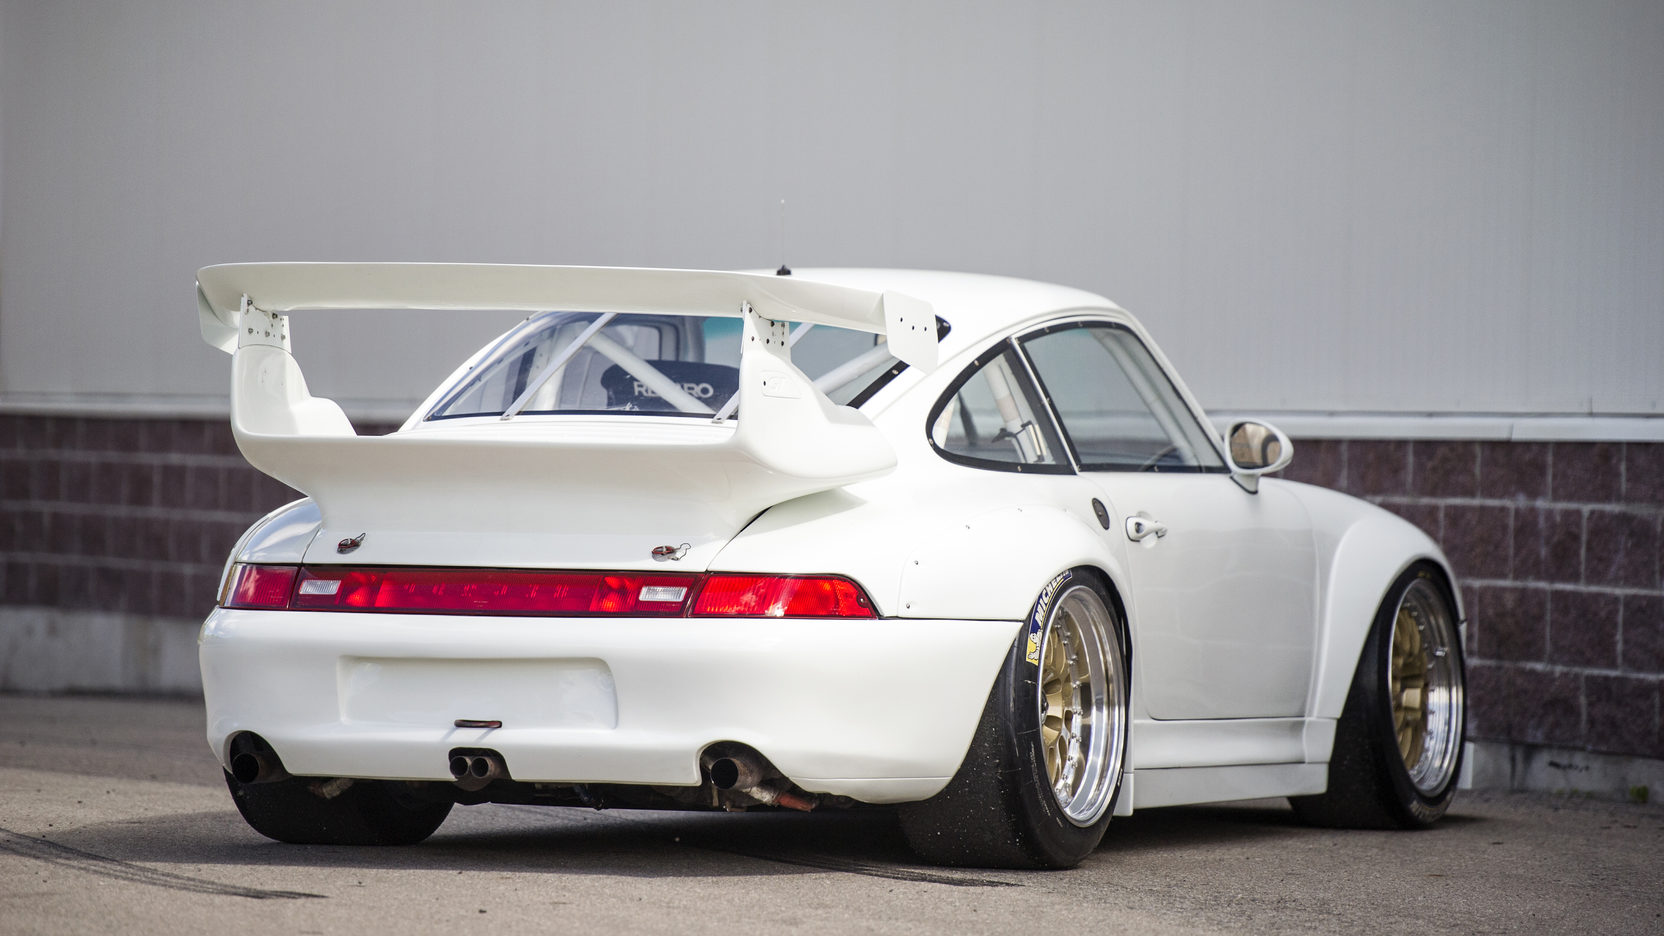 Rare Porsche 993 Gt2 Evo Going Under The Hammer